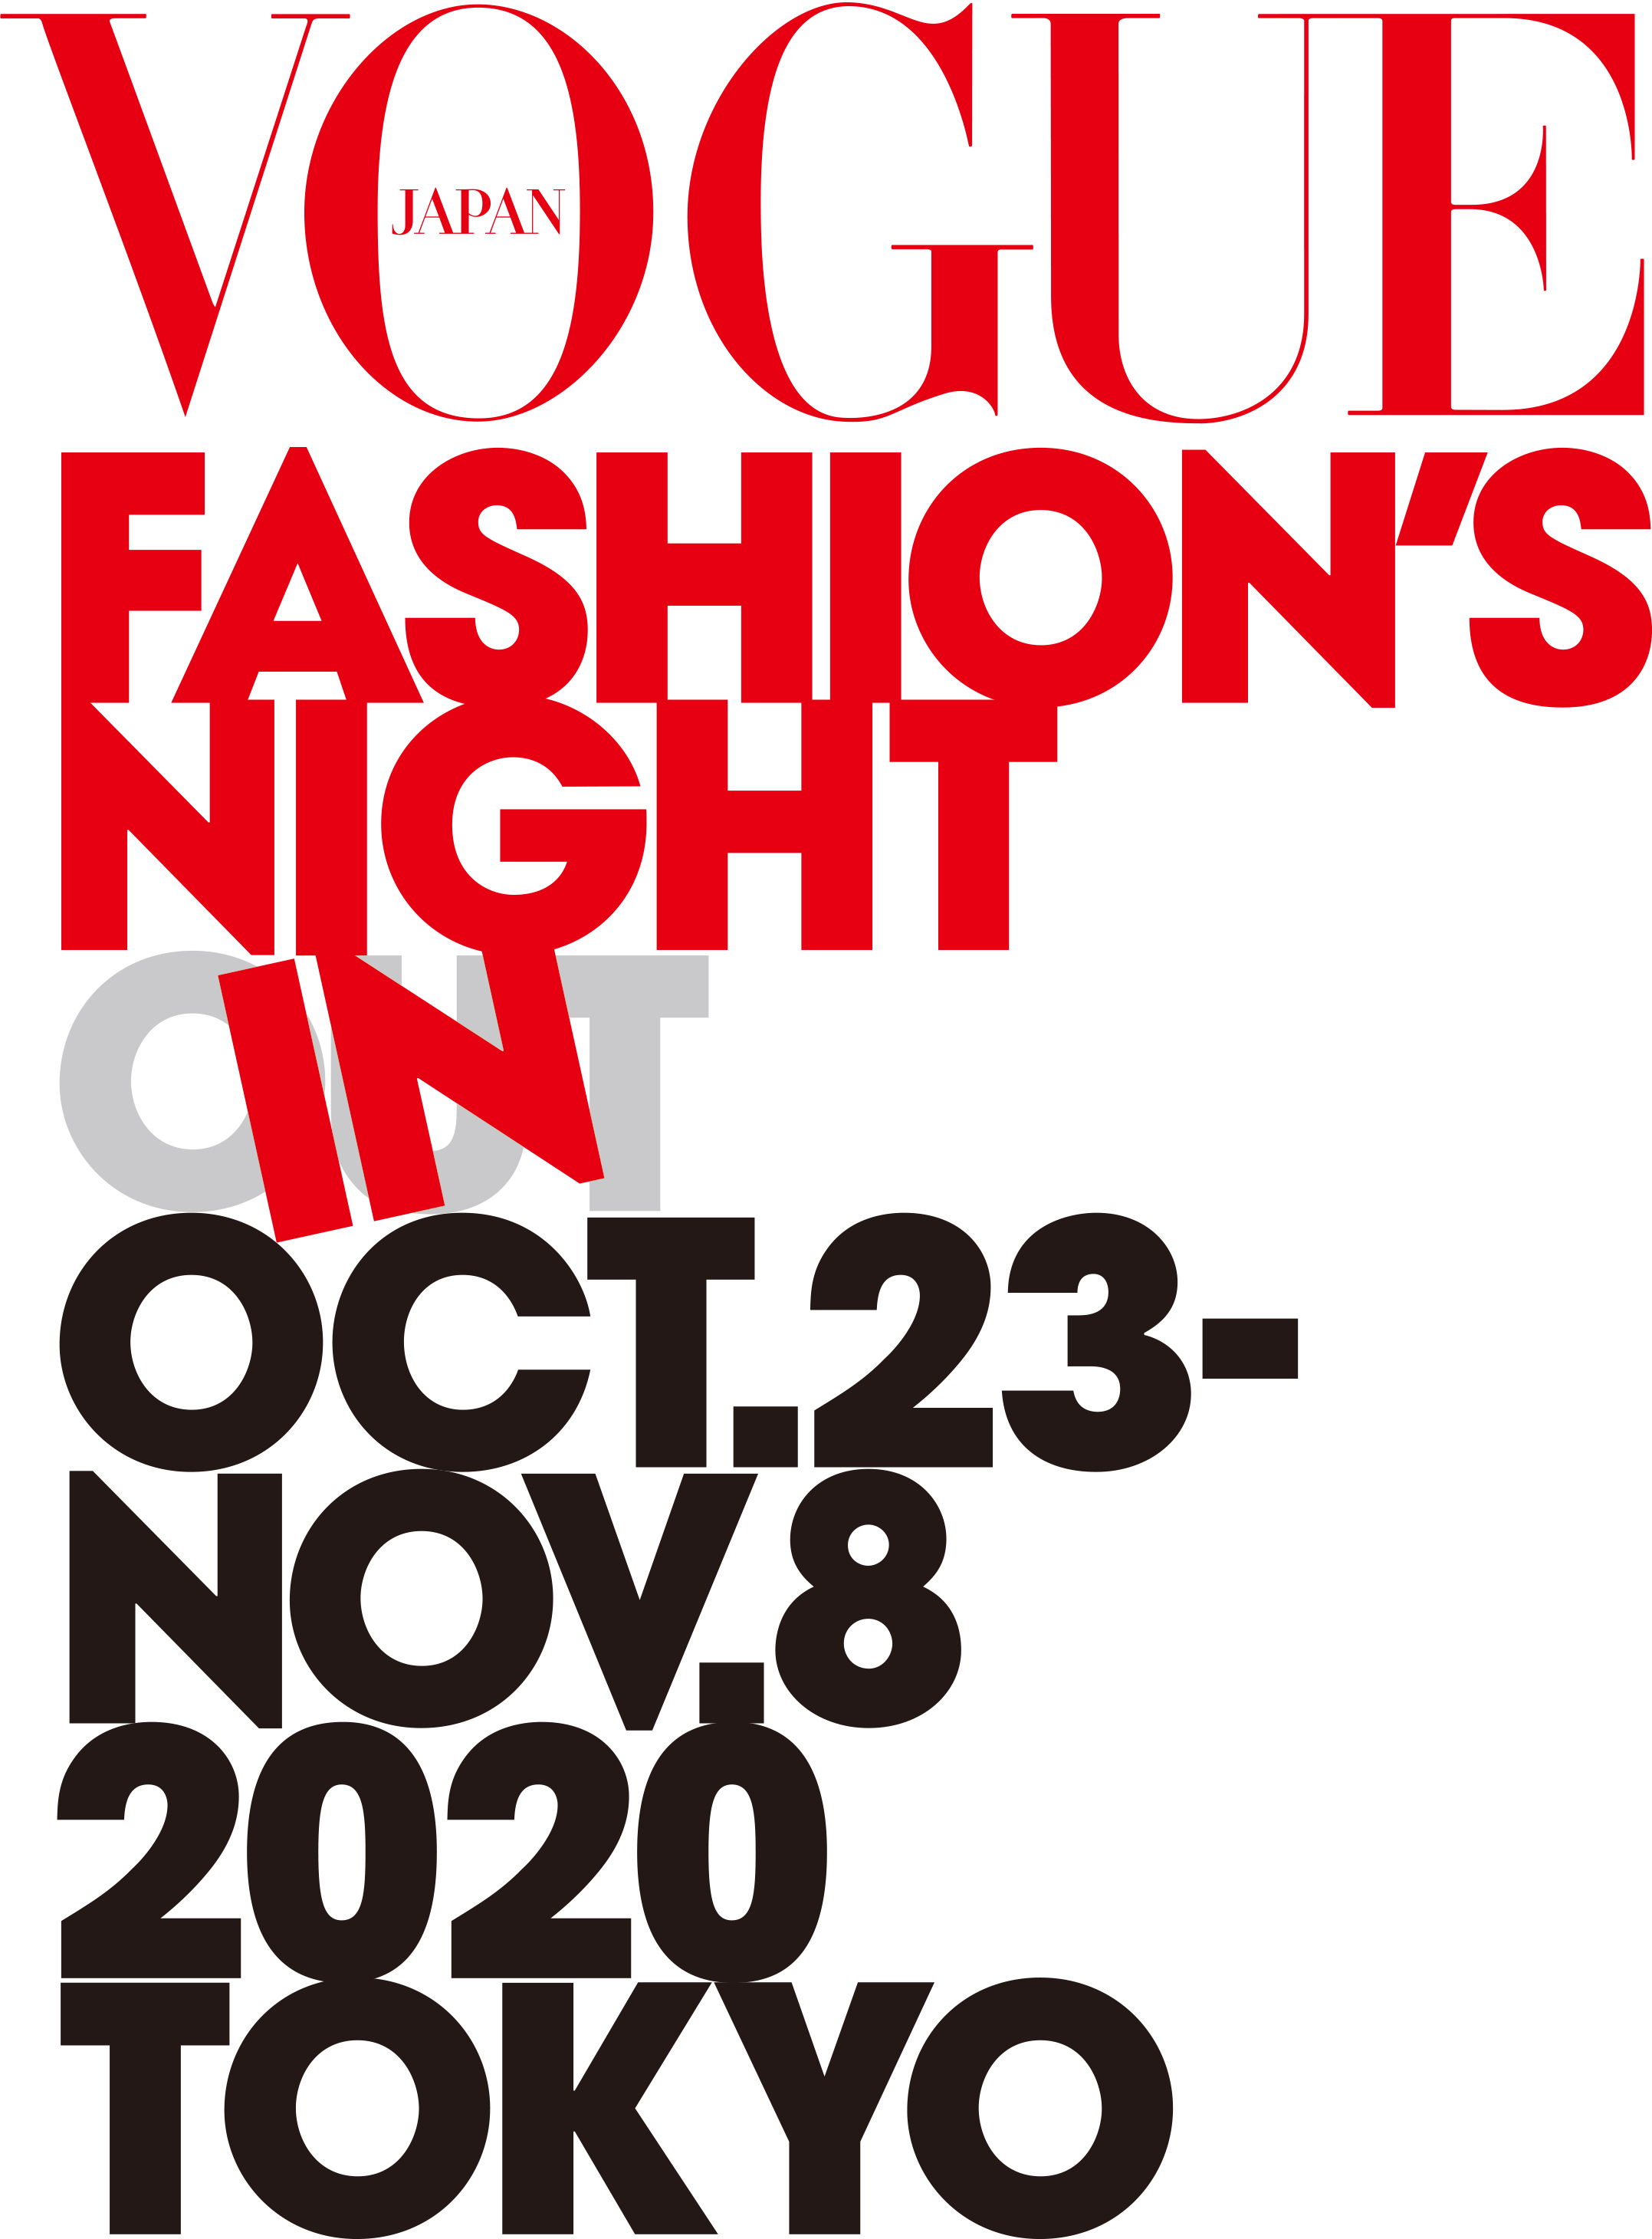 VOGUE FASHION'S NIGHT IN 2020へのリンク